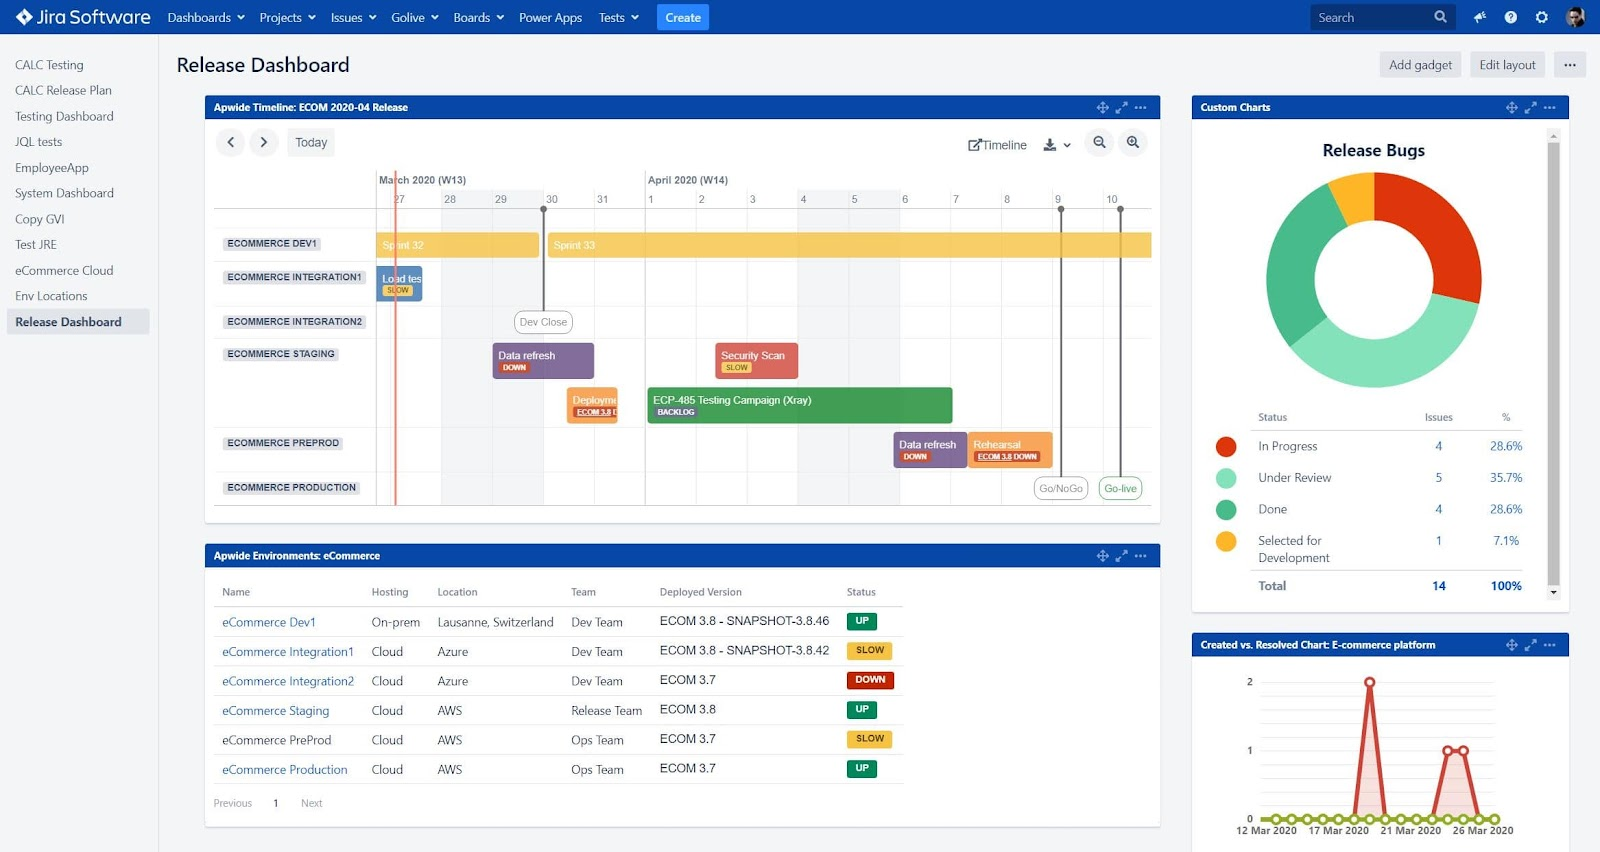 Apwide's golive Test environment management dashboards for Jira